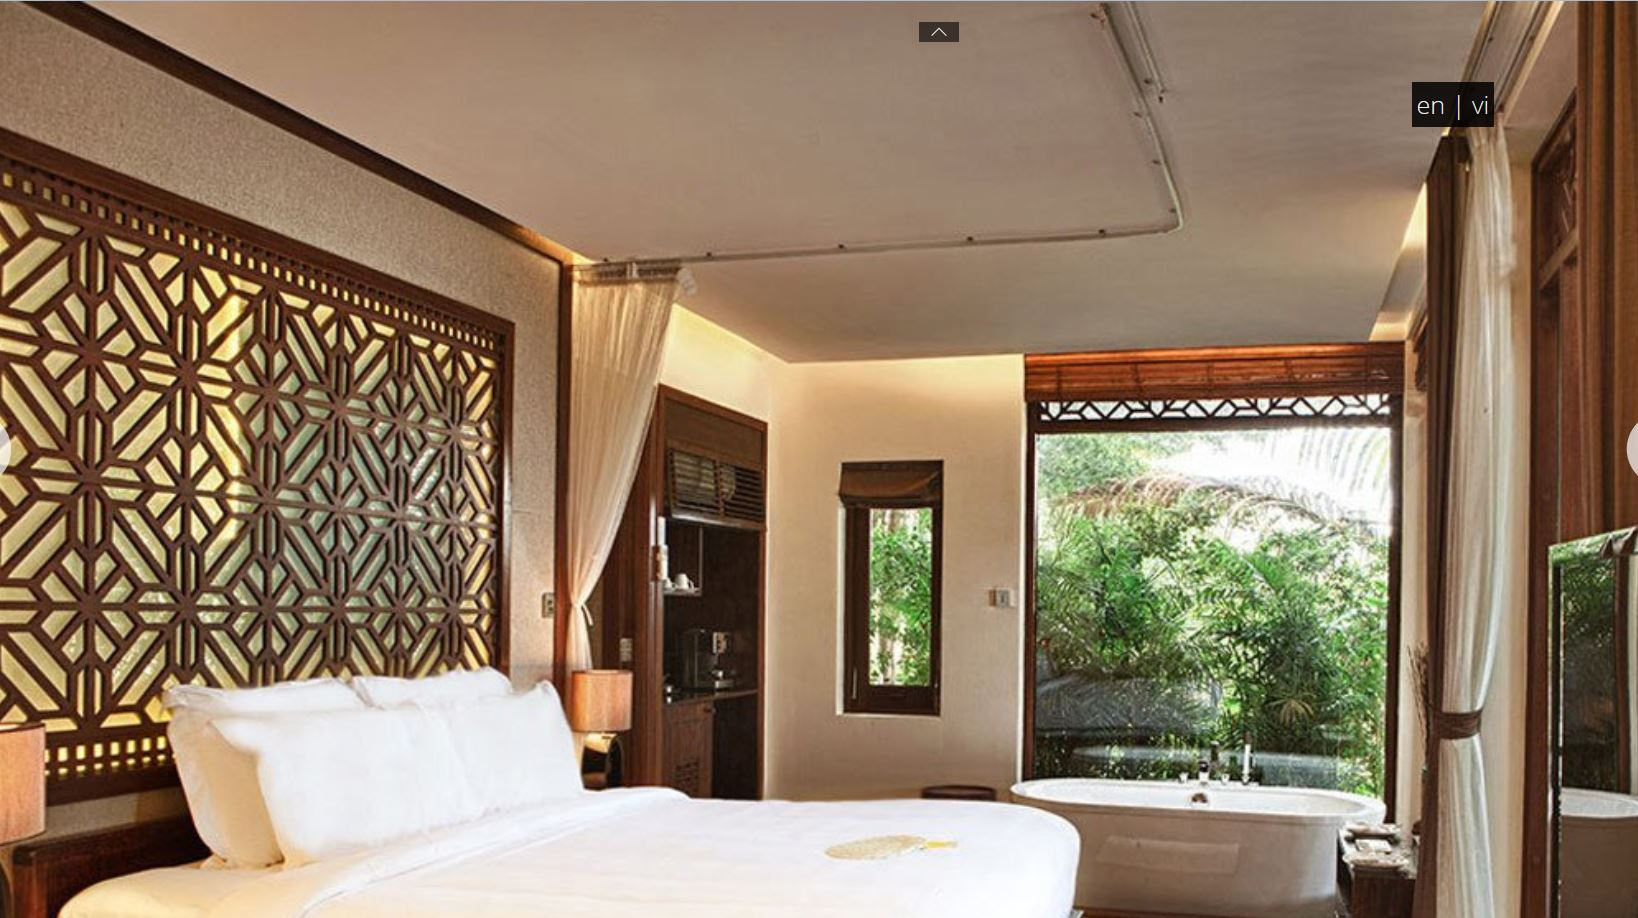 an-lam-sai-gon-river-private-villa-saigon-1-hotel24h.net.JPG